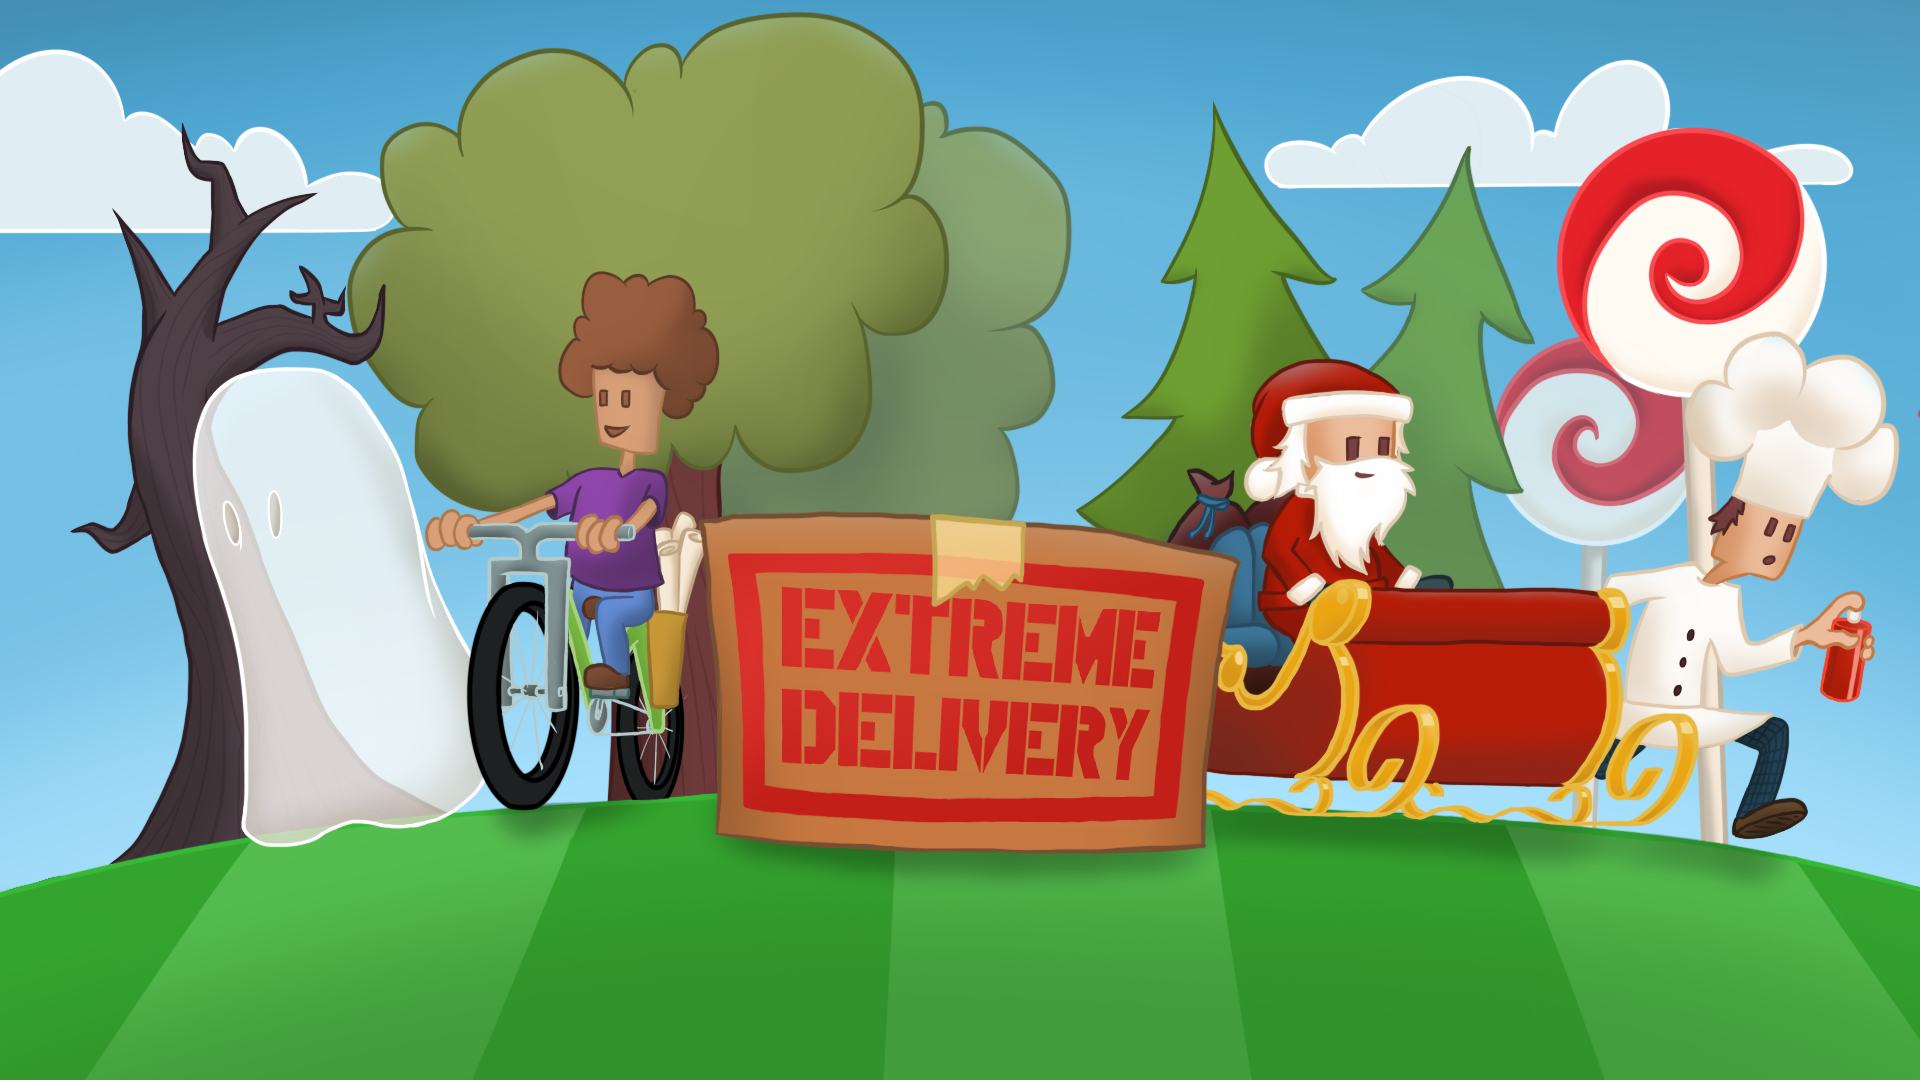 Extreme Delivery